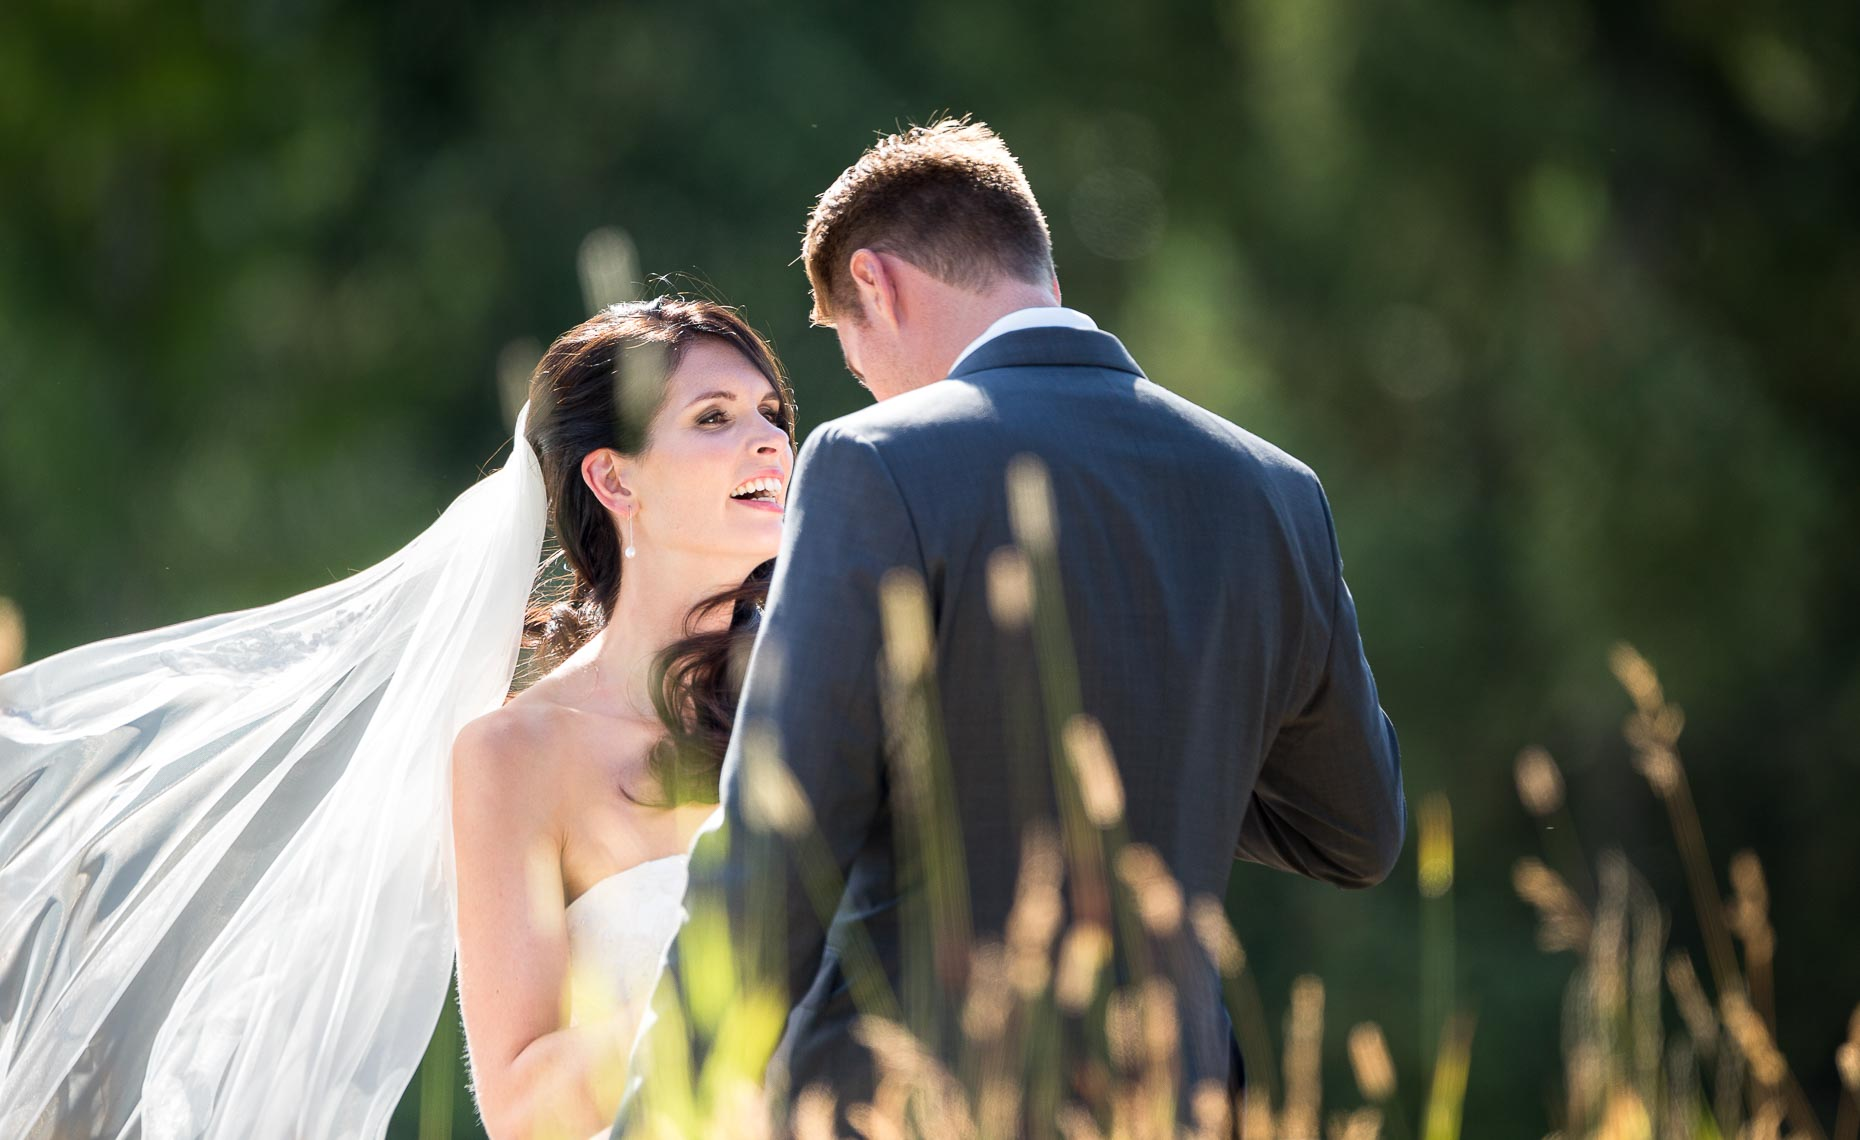 Intimate moment between bride and groom during wedding in Whistler, Canada